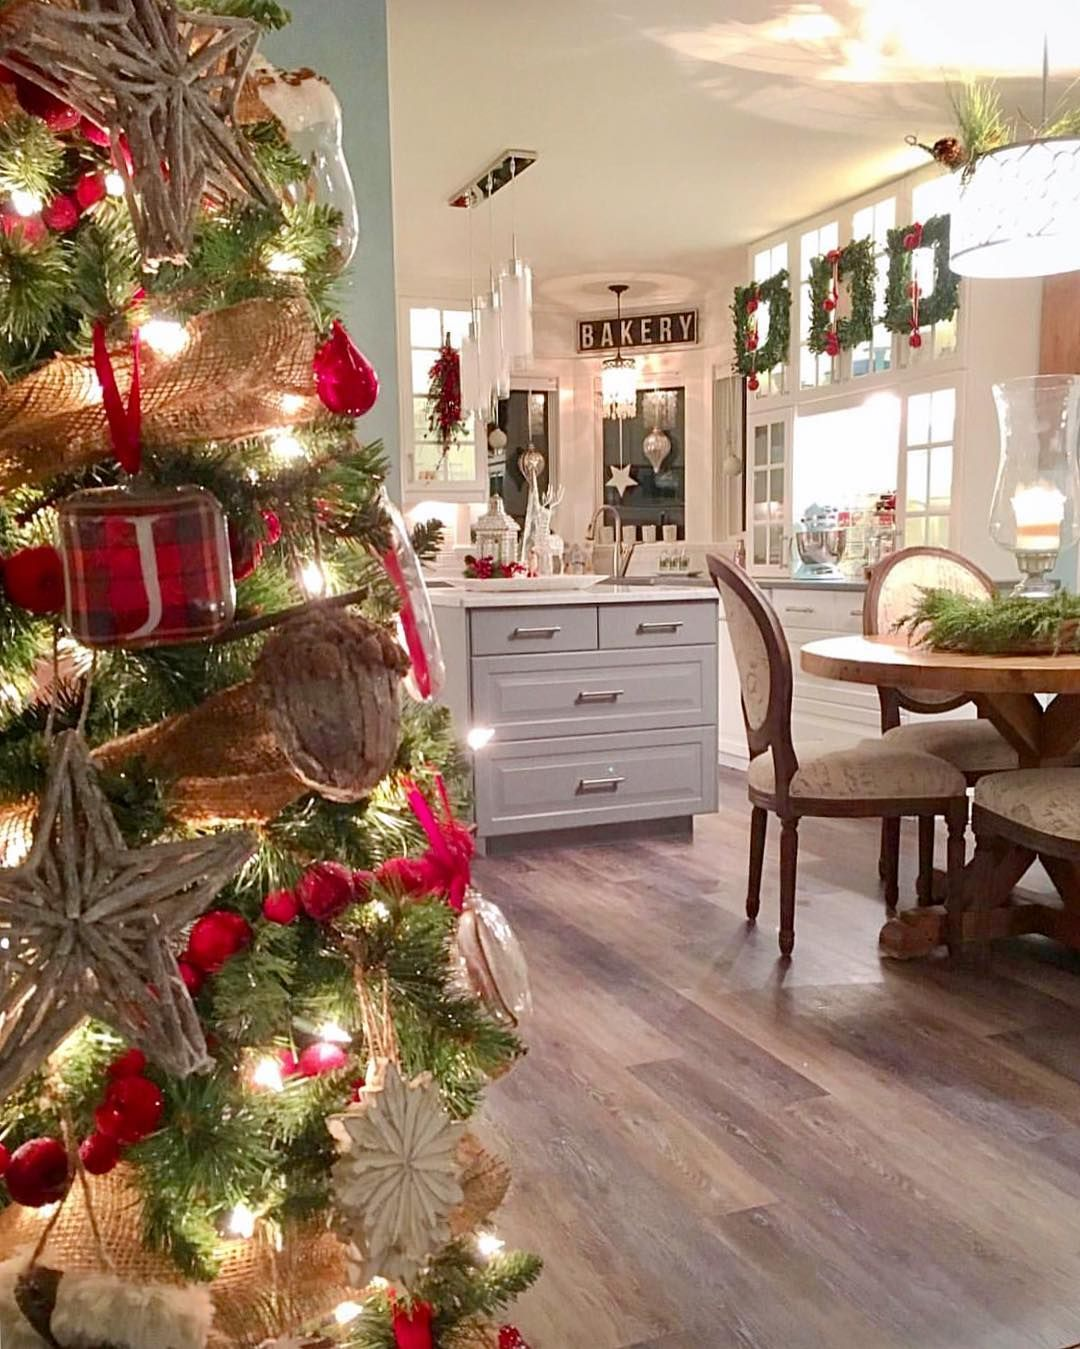 pin by perfect luxury on christmas with images christmas kitchen decor christmas kitchen on kitchen xmas decor id=42453